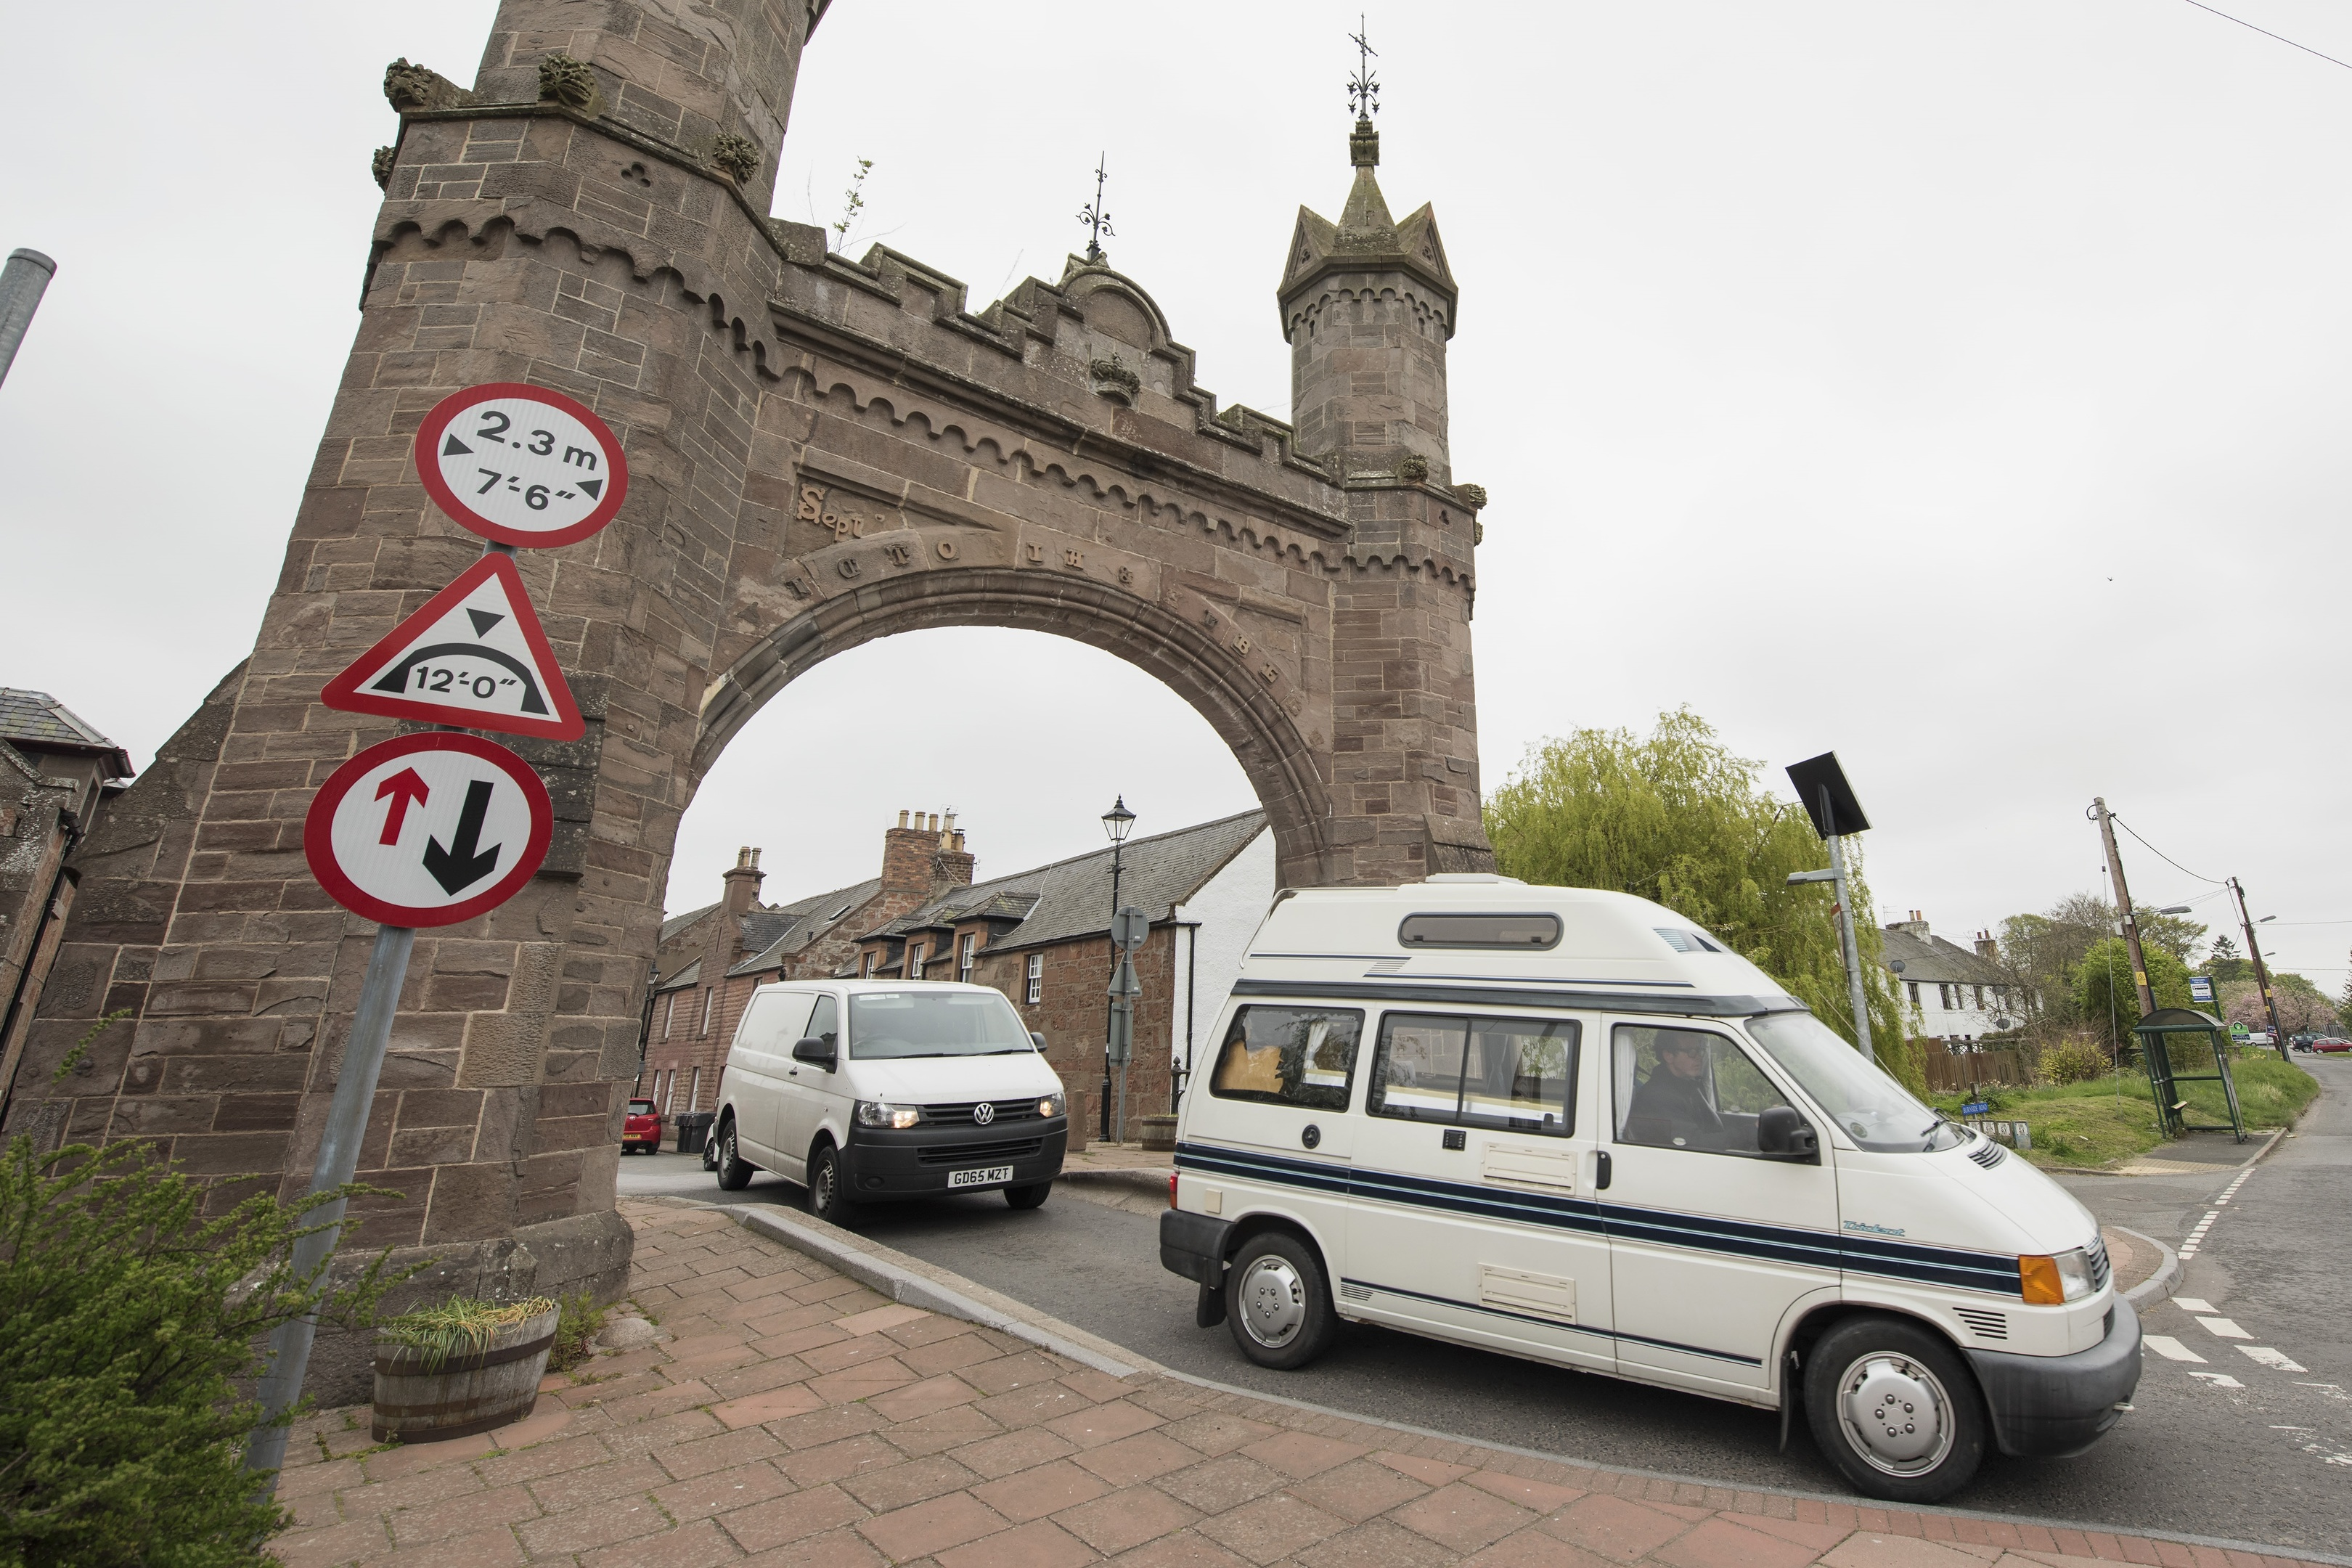 20170512- Fettercairn Arch Locals bemoan traffic calming measures at the arch which have ruined business in the village.   © Andy Thompson Photography / ATIMAGES   No use without payment.